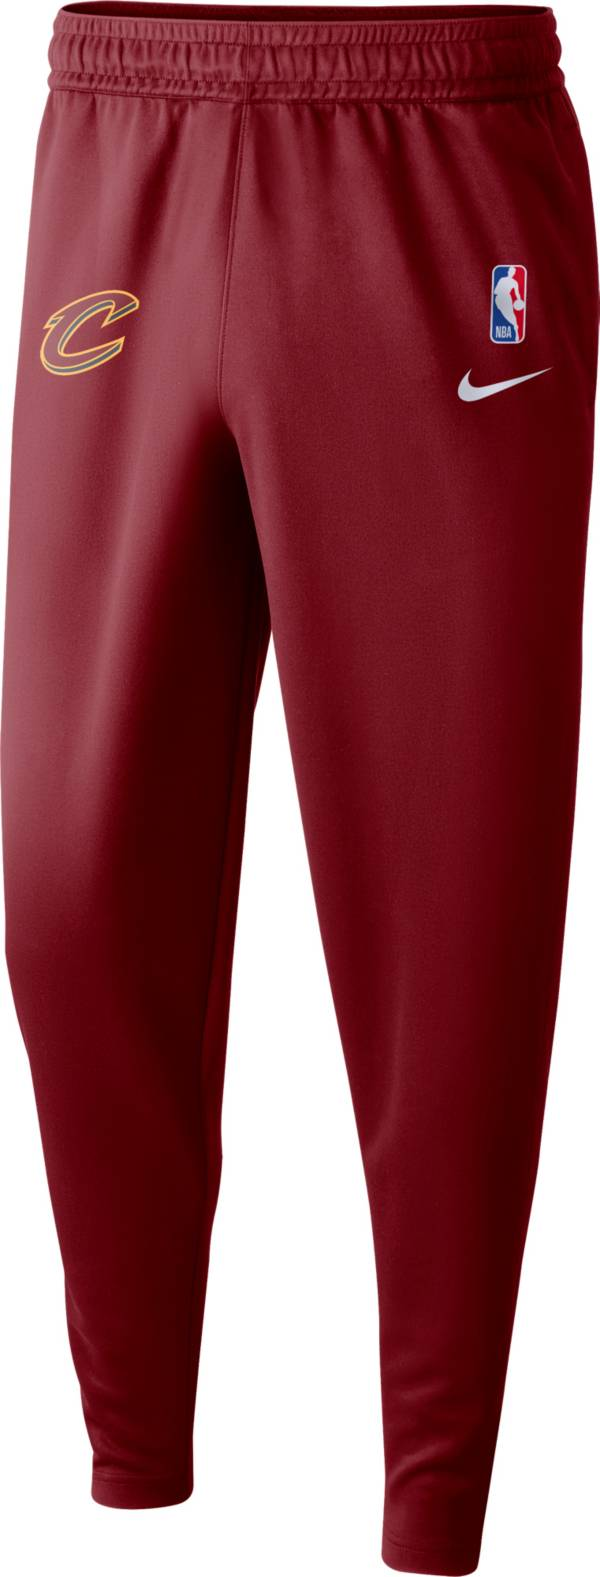 Nike Men's Cleveland Cavaliers Dri-FIT Spotlight Pants product image